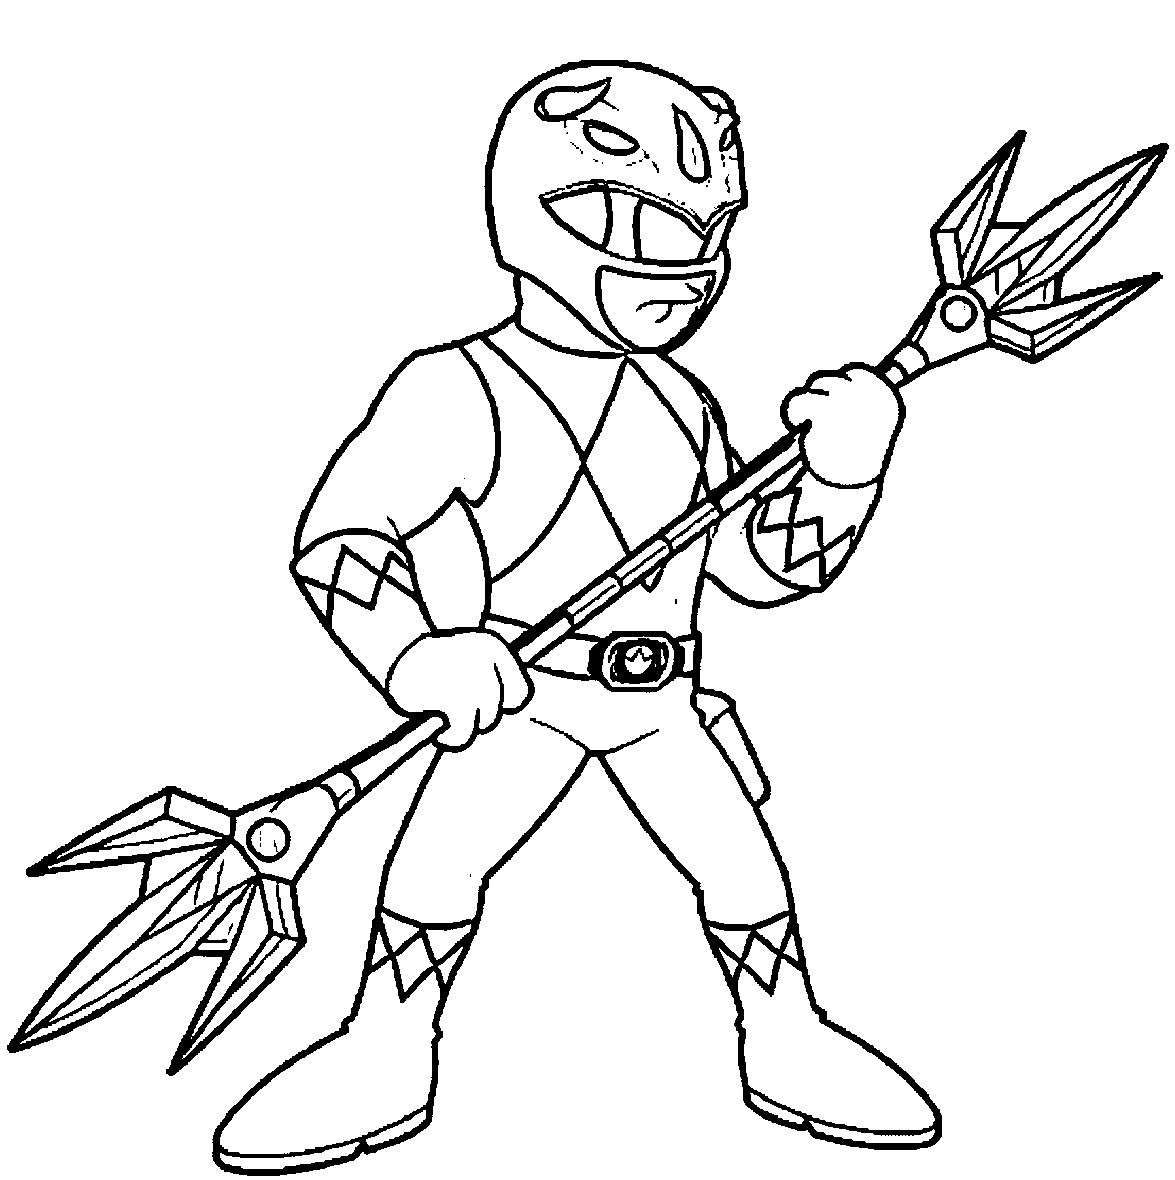 Power Ranger Coloring Pages  Red Power Ranger Mask Printable thekindproject